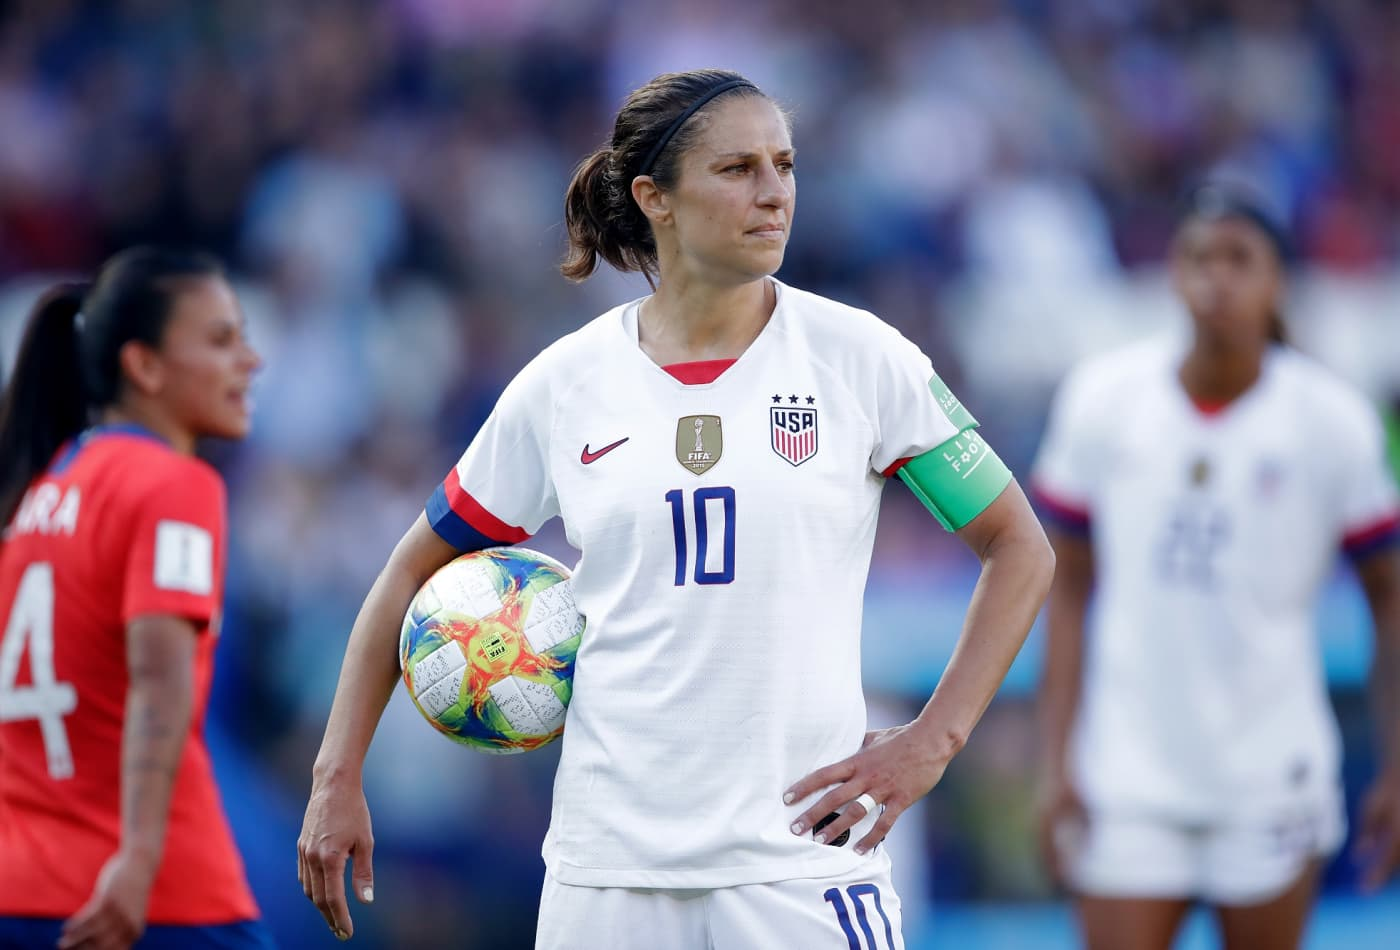 US women's soccer games now generate more revenue than men's